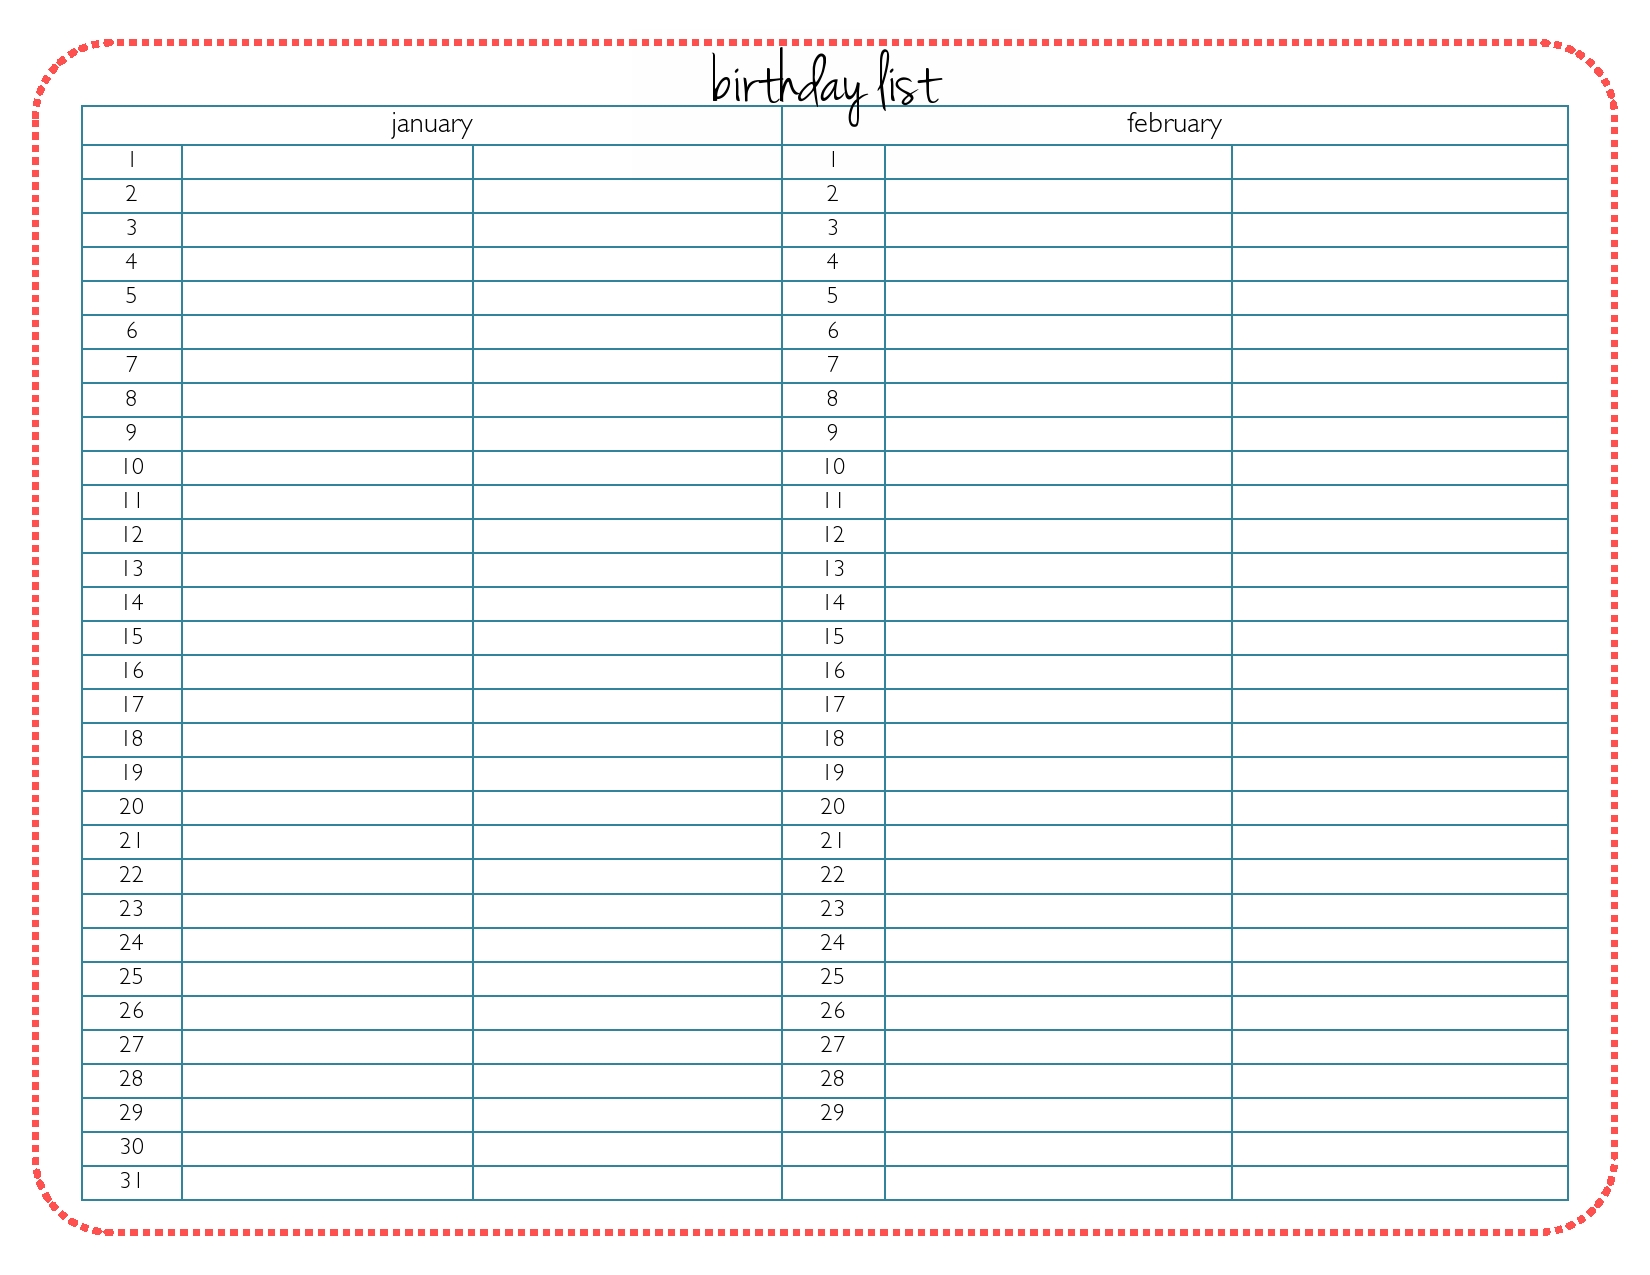 7 Images of Printable Birthday List Out